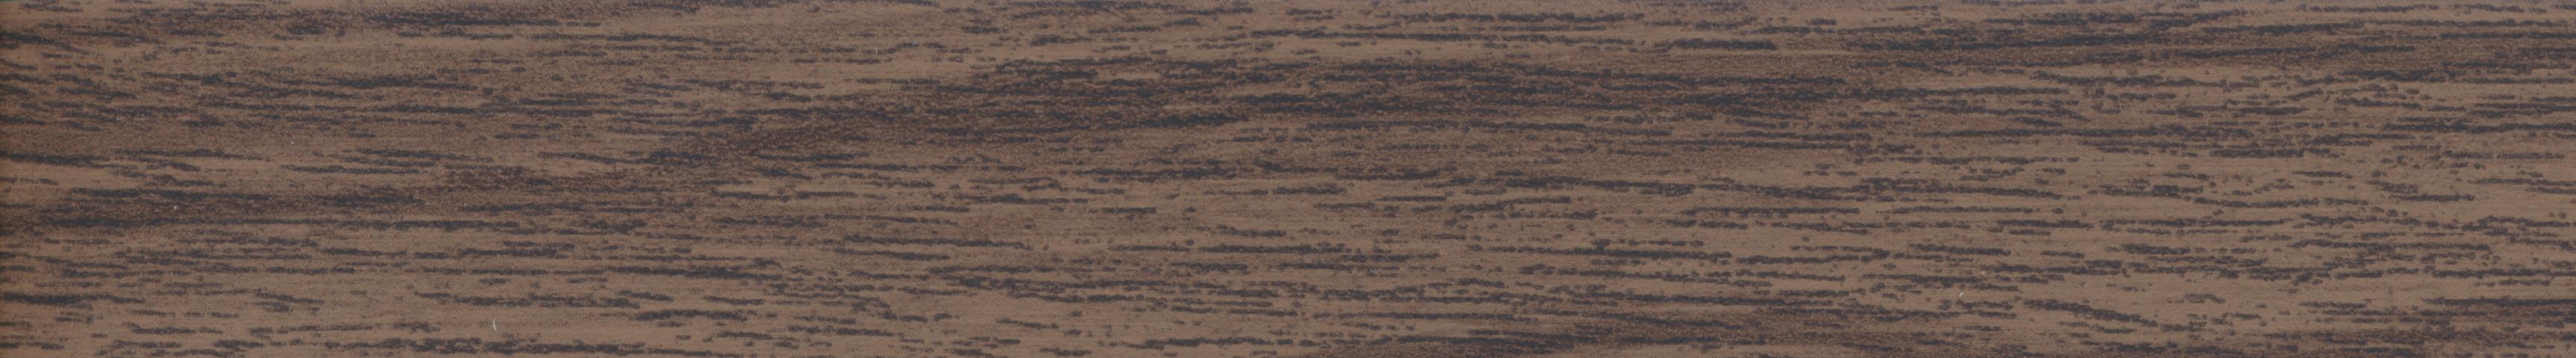 ARAUCO WF443:LUXENT 15/16x1mm CP41318 EMB LAC 600' CO